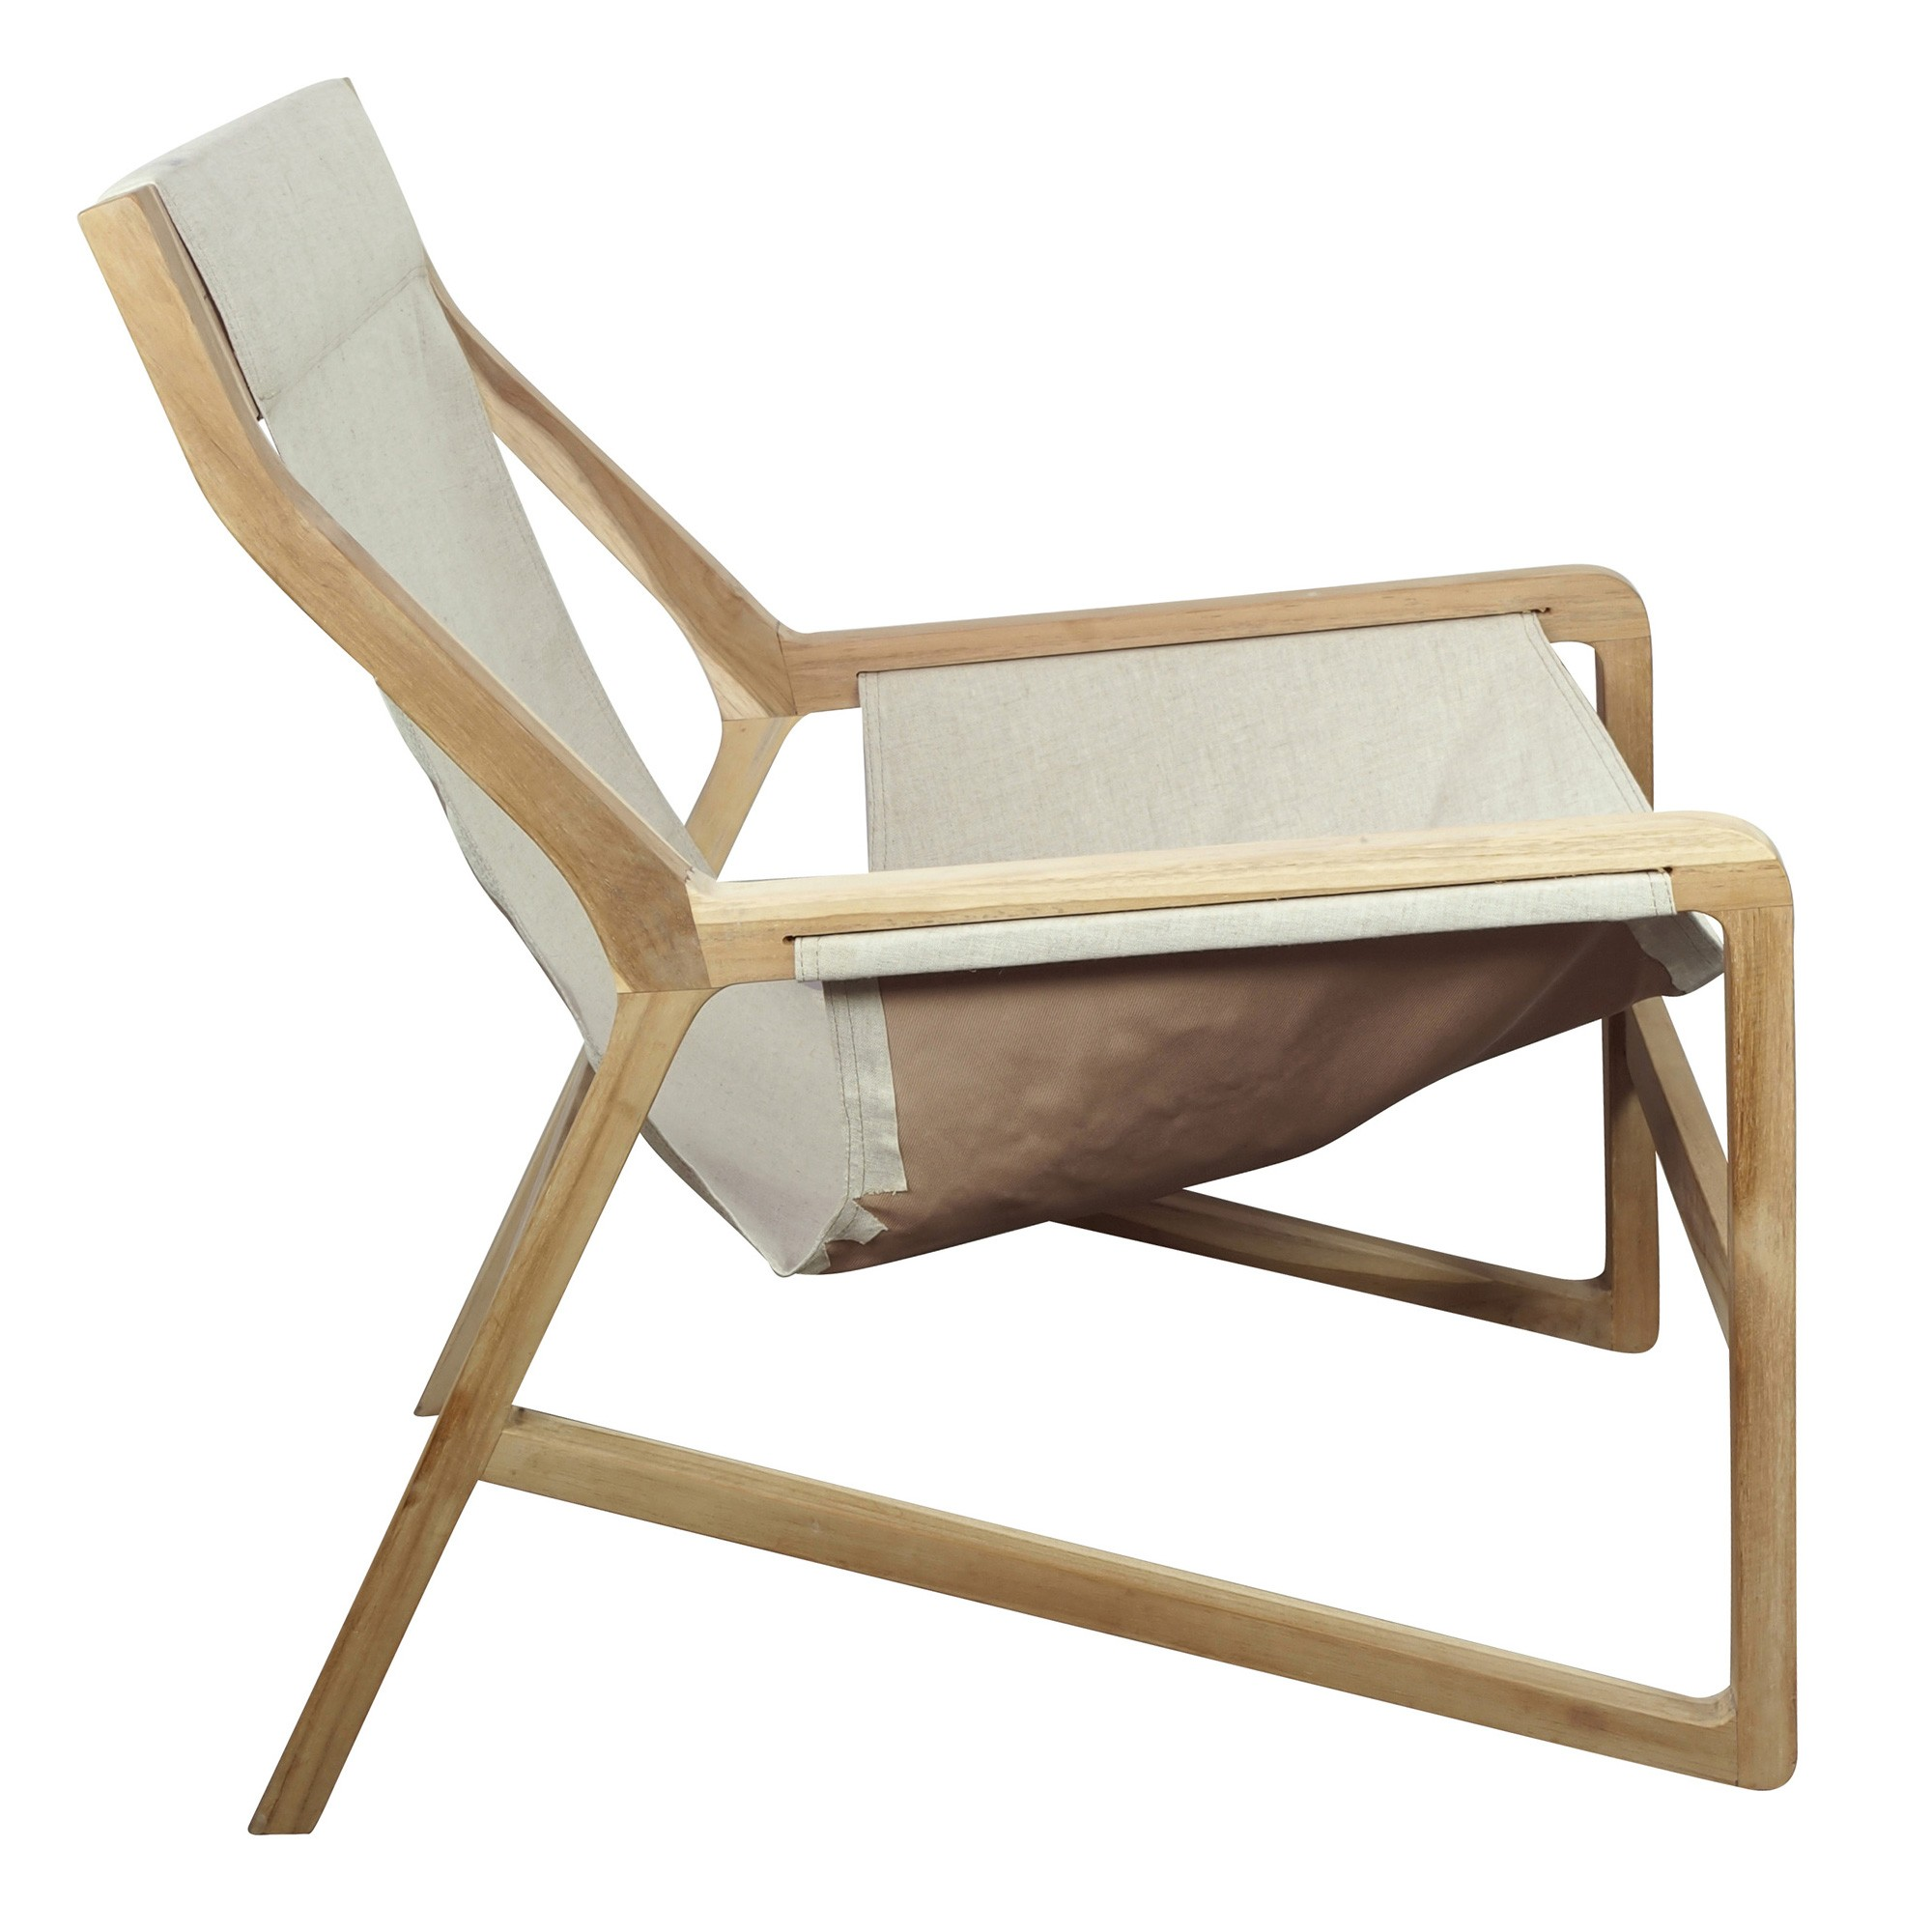 Bowie Teak Lounge Chair, Linen Seat, Beige / Natural